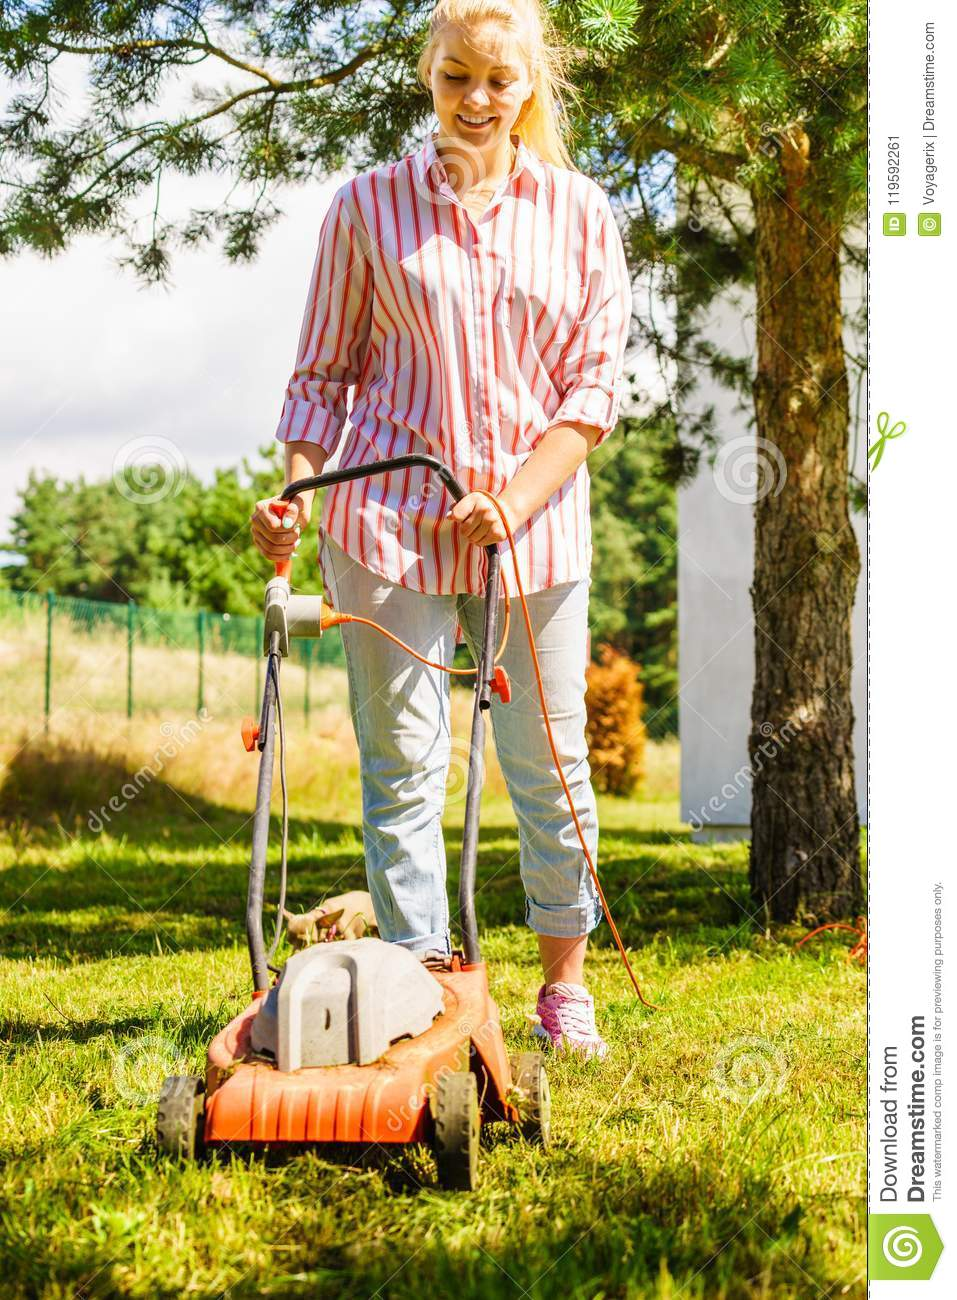 Woman Gardener Mowing The Grass With Lawn Mower Stock